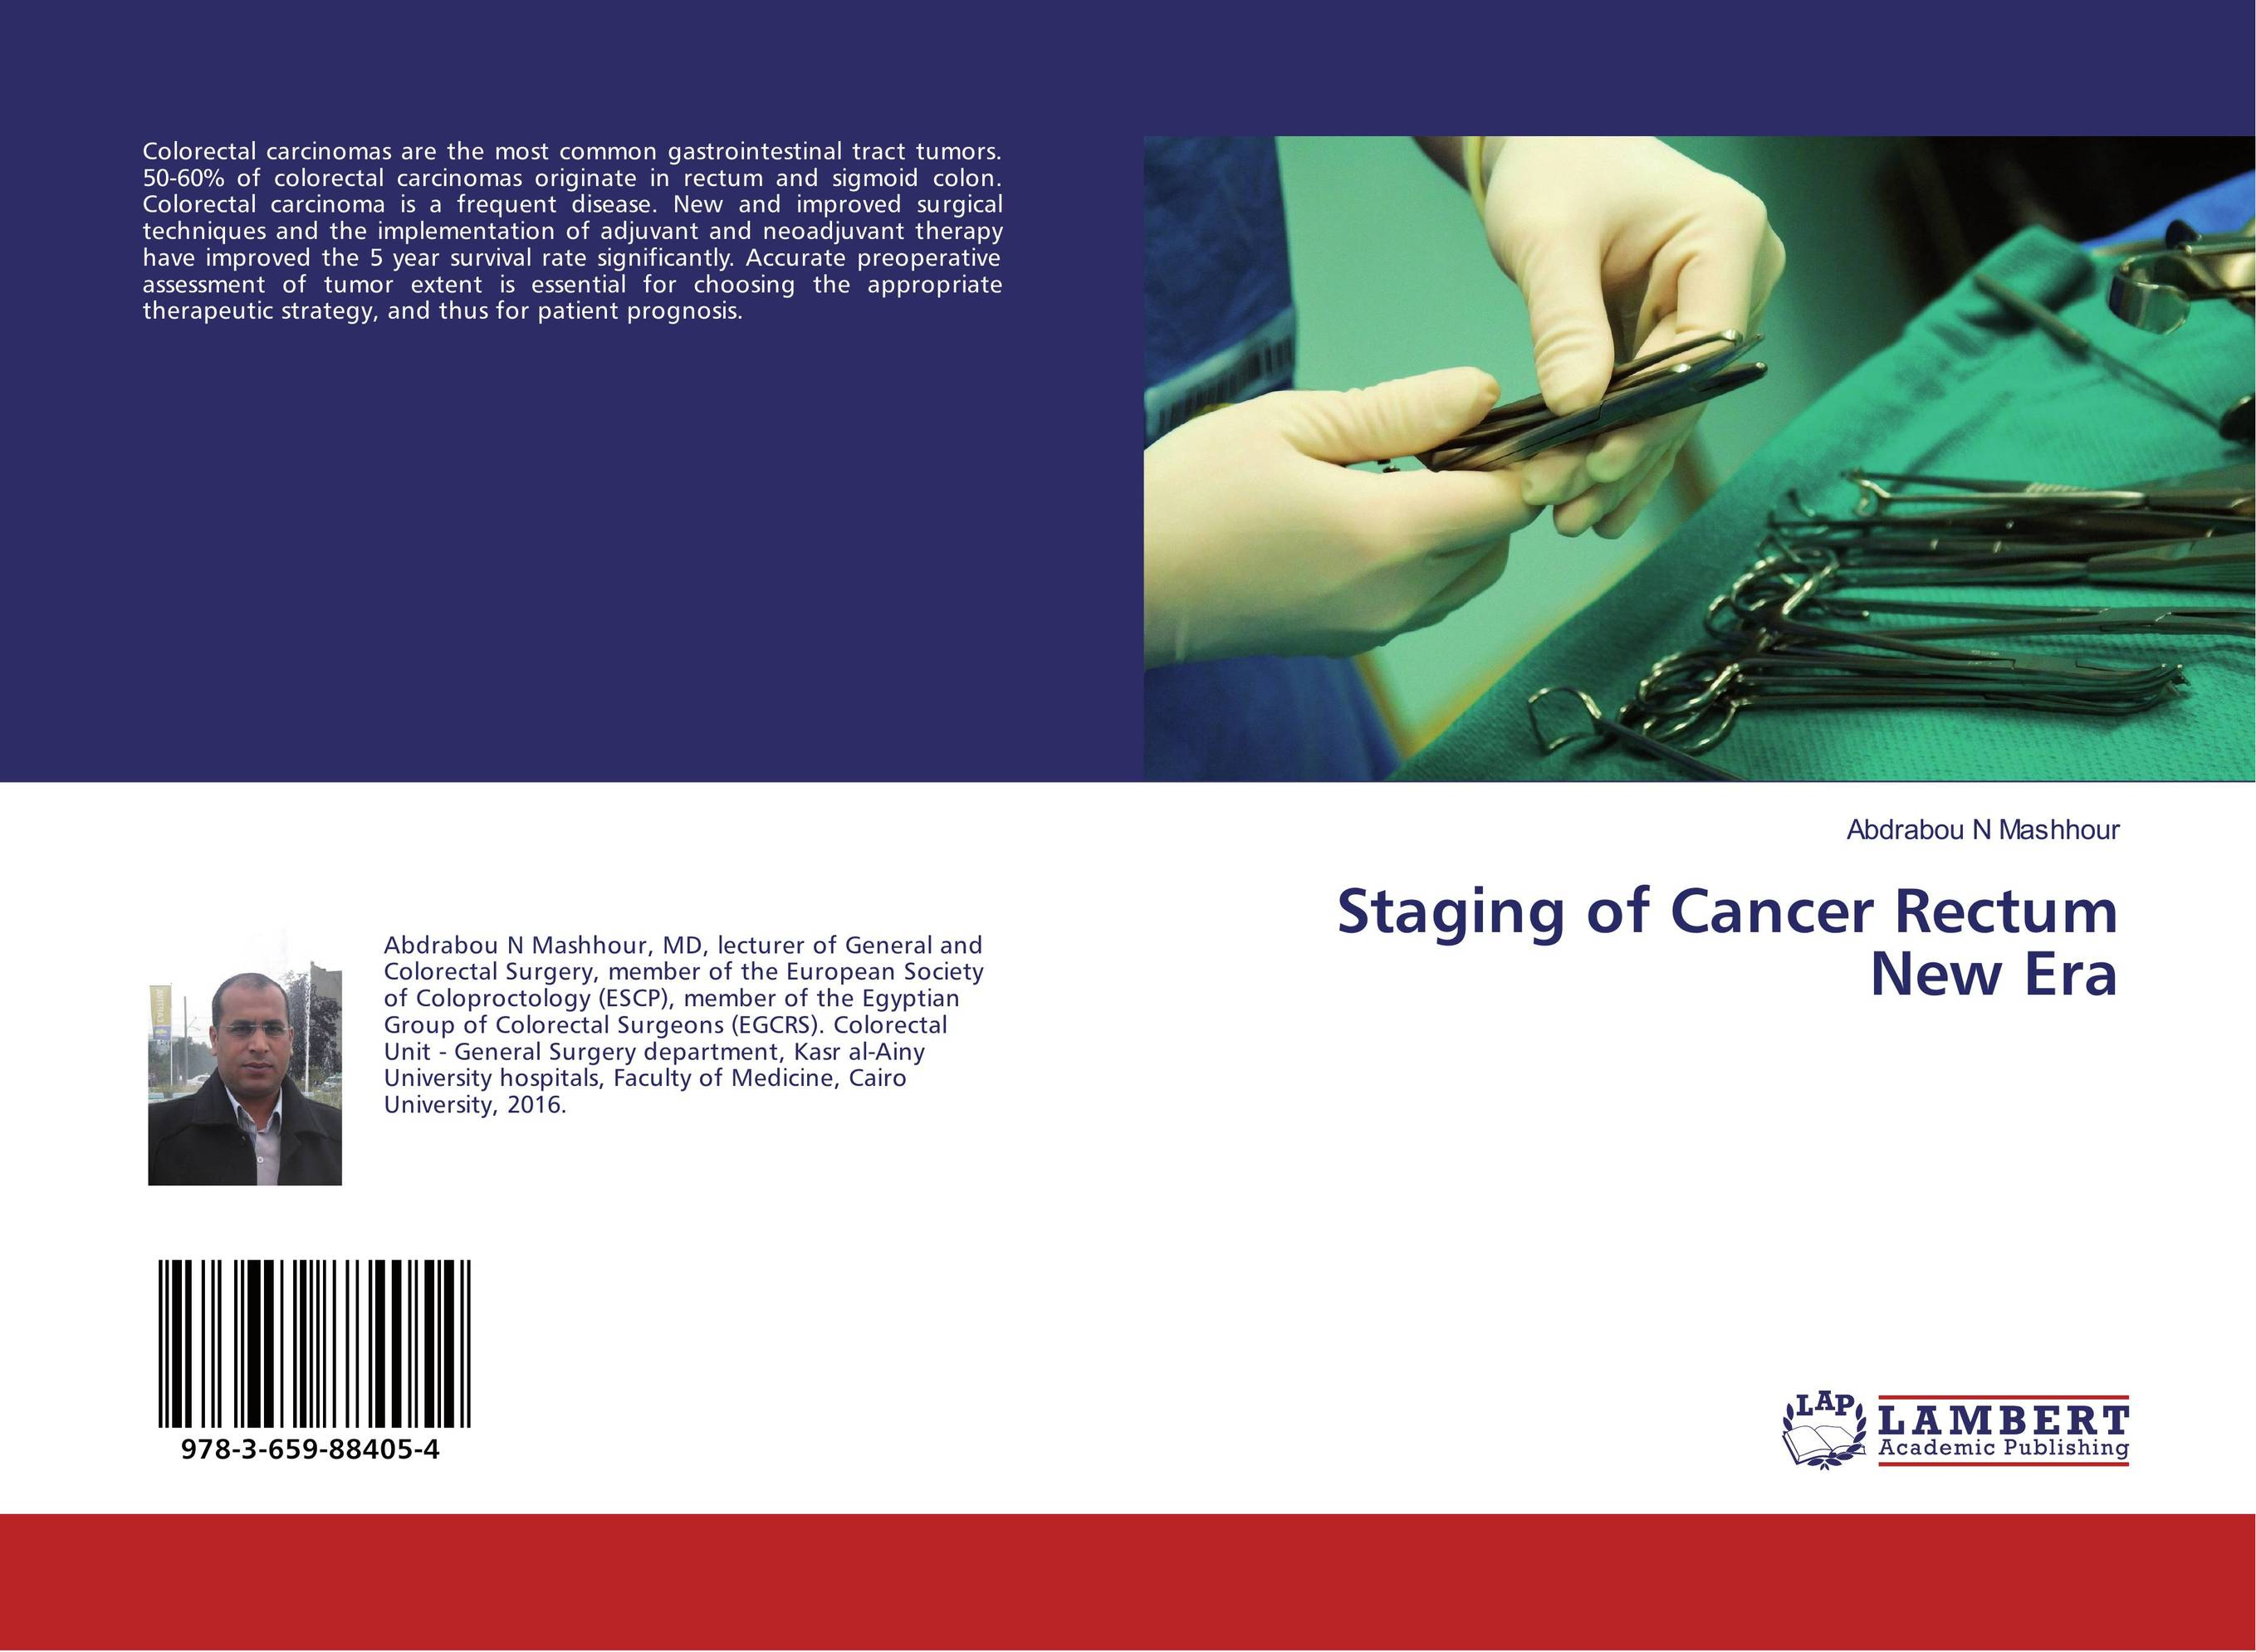 Staging of Cancer Rectum New Era against colorectal cancer